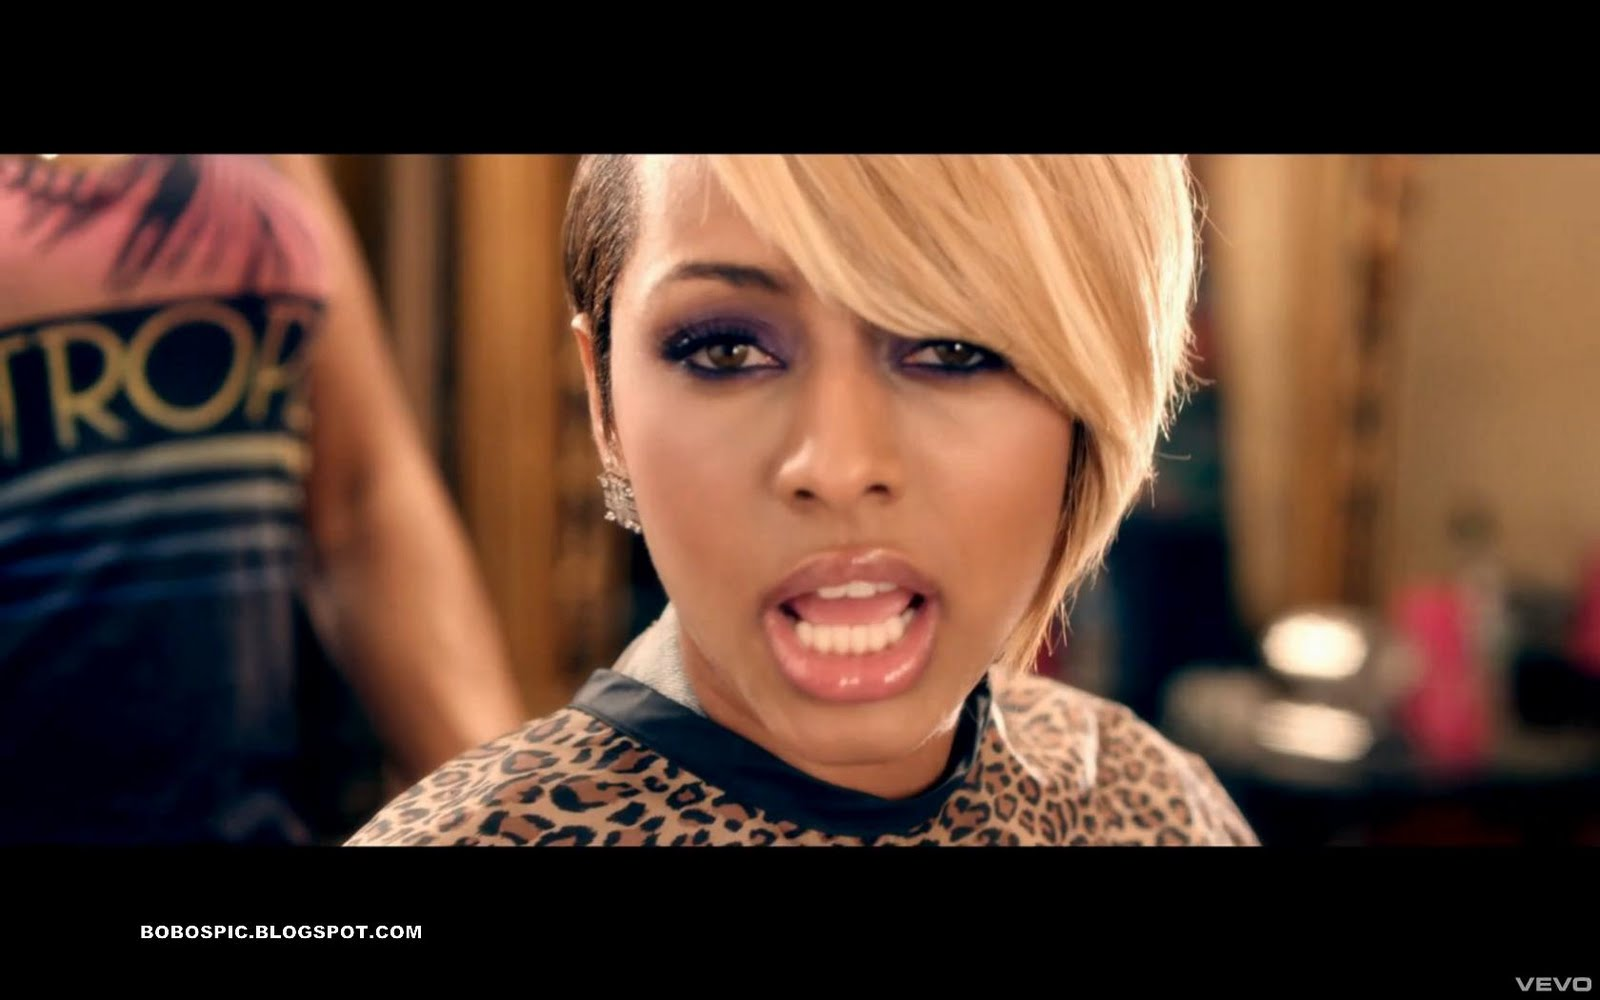 keri hilson breaking point video pictures short